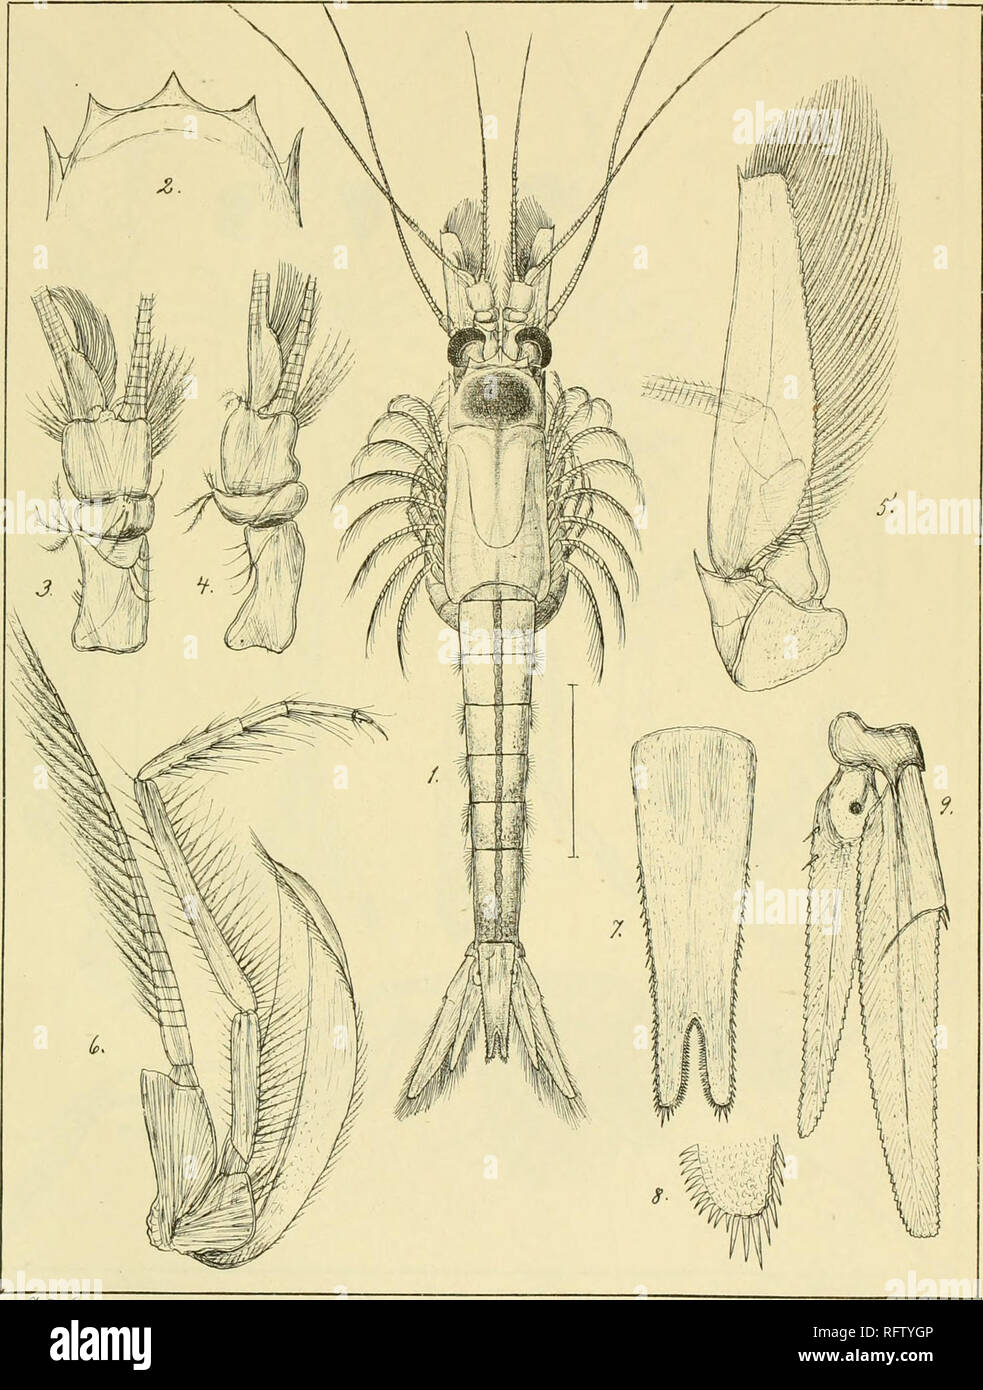 . Carcinologiske bidrag til Norges fauna. Mysidae; Crustacea. Tzf.xiv:. -L jc^ir^ U4?i. /n^o 4... Please note that these images are extracted from scanned page images that may have been digitally enhanced for readability - coloration and appearance of these illustrations may not perfectly resemble the original work.. Sars, G. O. (Georg Ossian), 1837-1927; Kongelige Norske videnskabers selskab. Christiania, Brøgger & Christie's bogtrykkeri Stock Photo